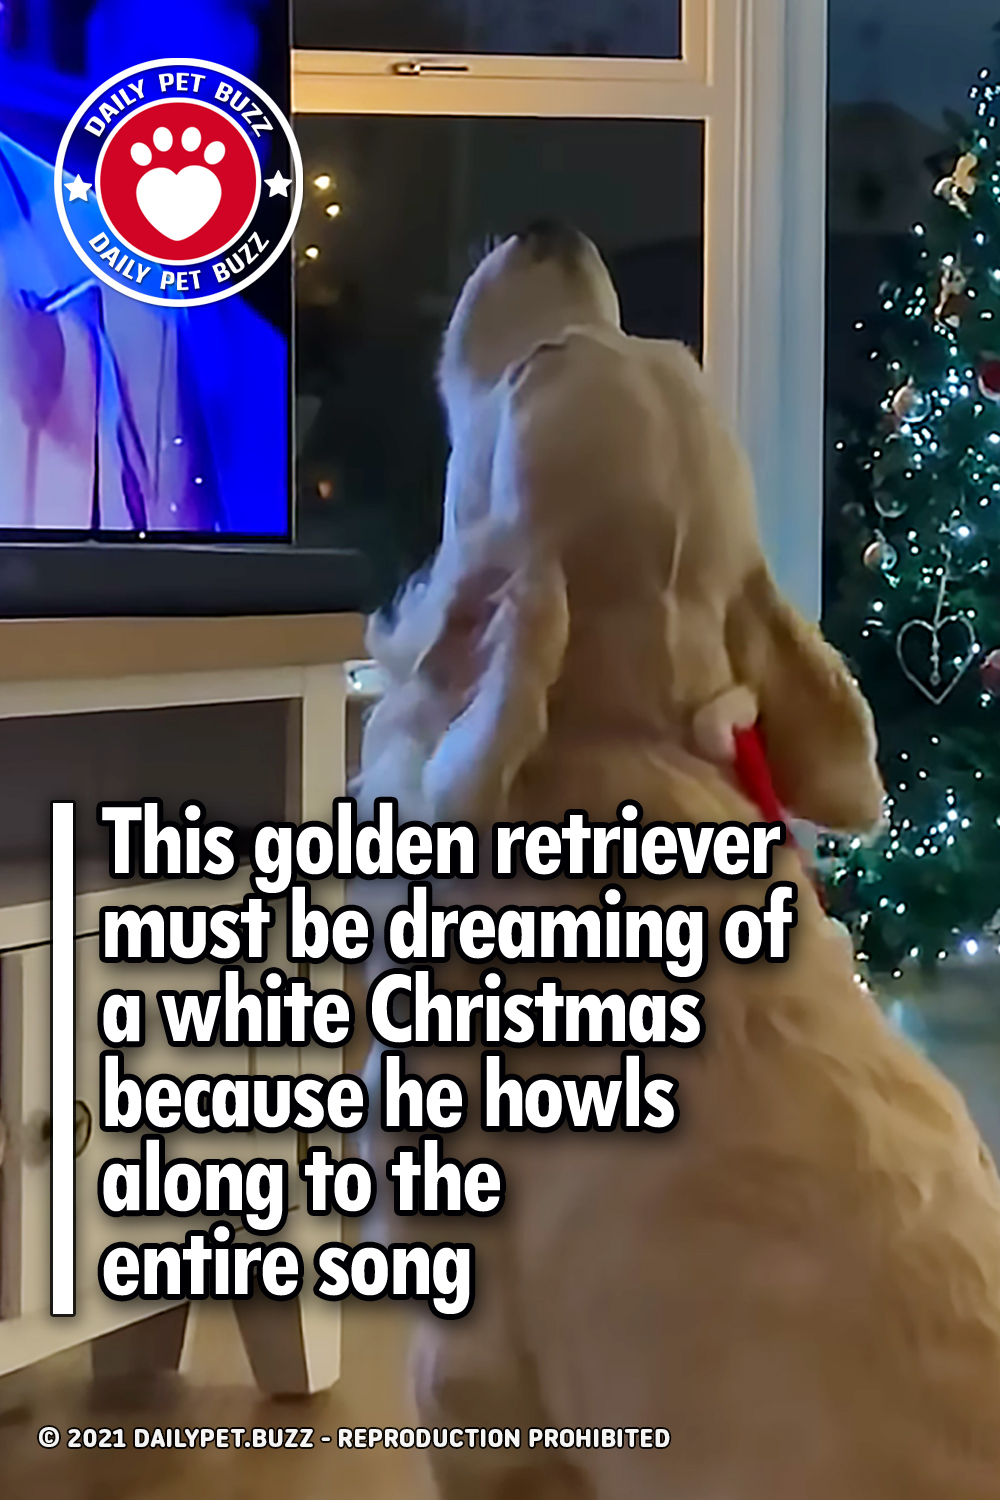 This golden retriever must be dreaming of a white Christmas because he howls along to the entire song